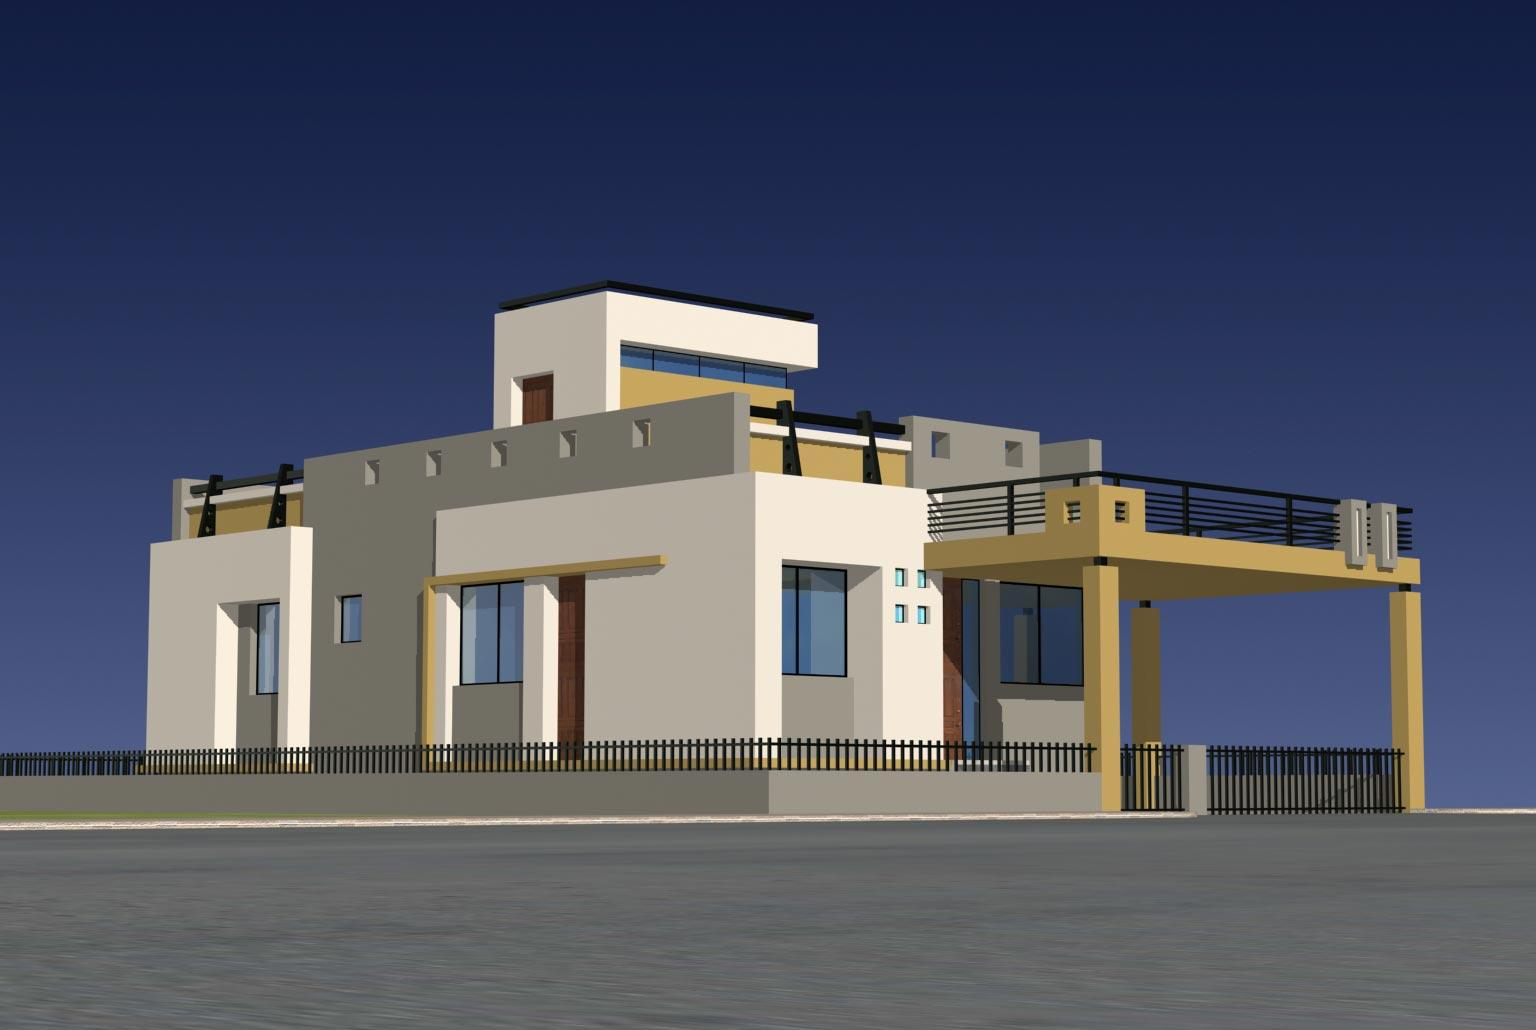 Elevation For Small Bungalow. bungalow flythroughs bungalow front view bungalow flooring. status under construction. small bungalow elevation posts small bungalow elevation images. architectural bungalow elevation rendering bungalow elevation 3d bungalow visualization elevation. bungalow 3d elevation bungalow elevation bungalow front design